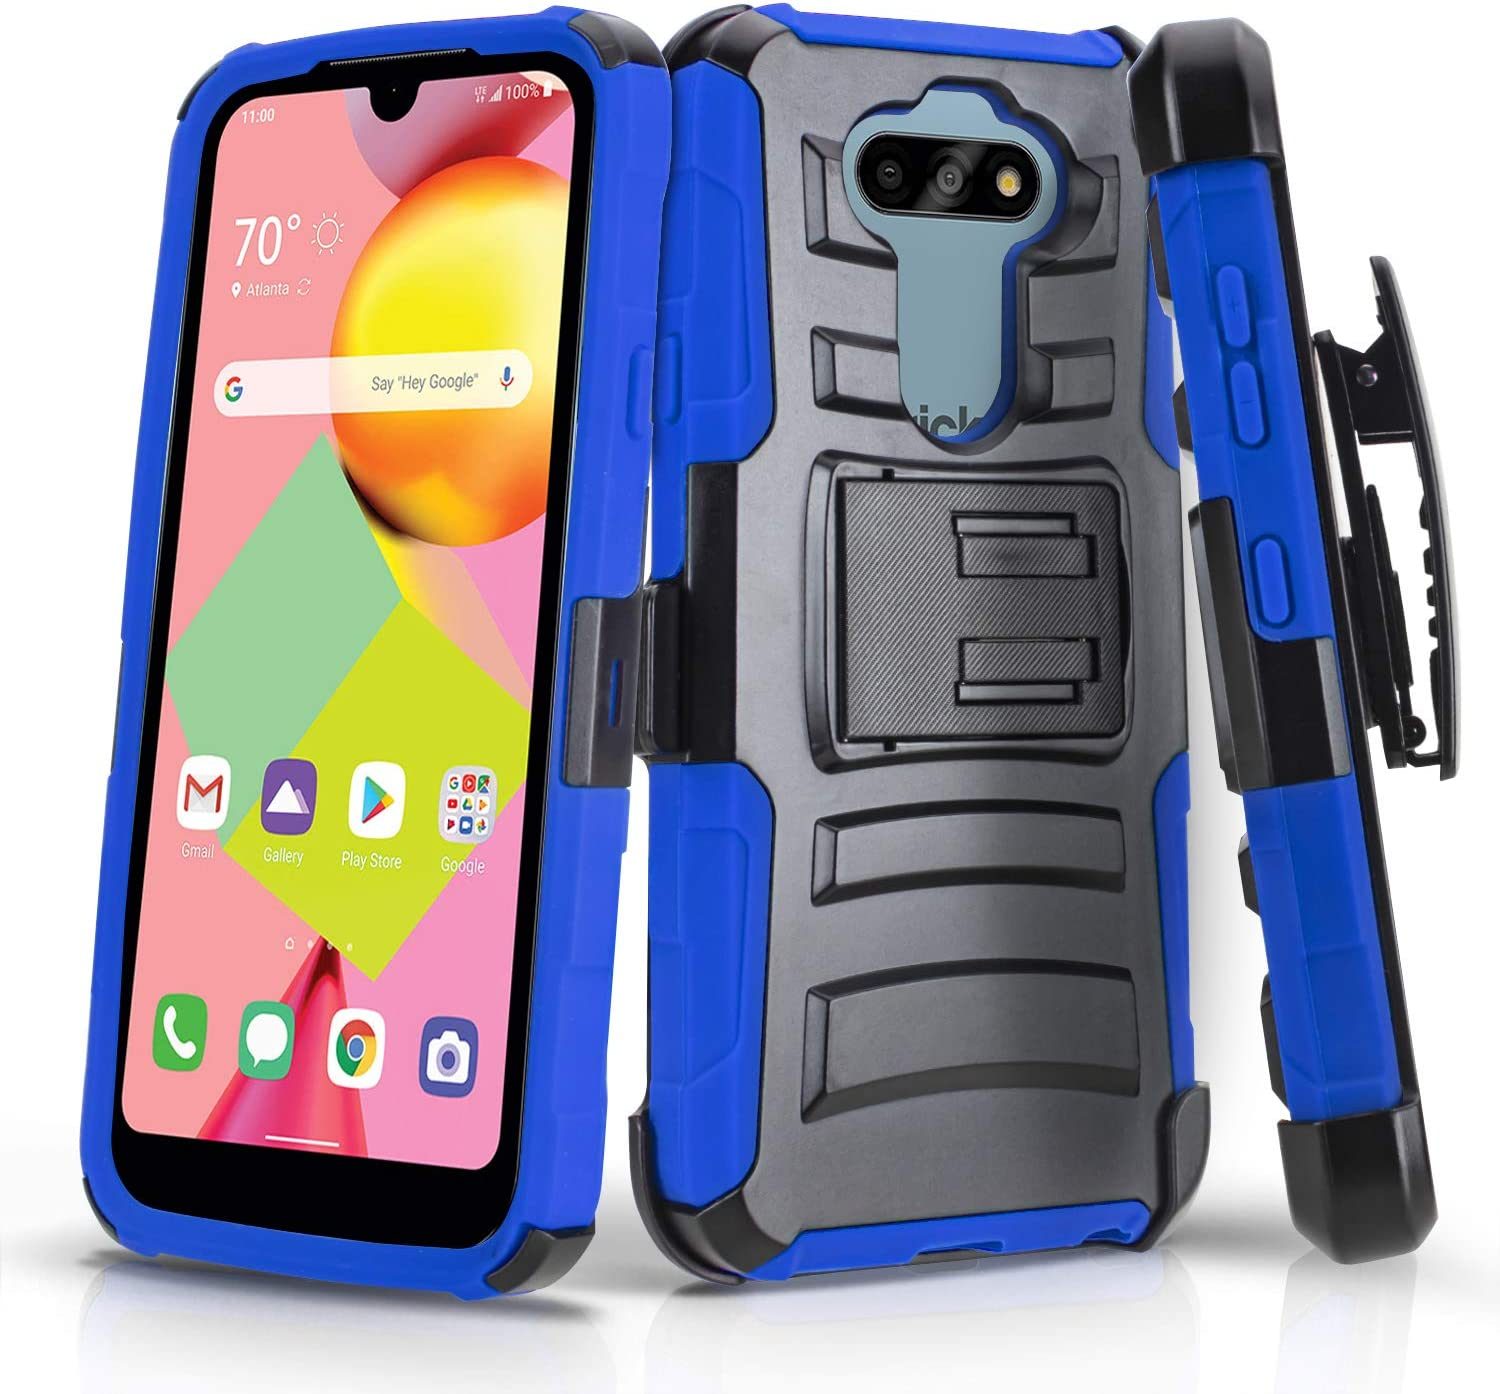 CasemartUSA Phone Case for [LG Risio 4 (Cricket Wireless)], [Refined Series][Blue] Shockproof Protective Cover with Built-in Kickstand & Swivel Belt Clip Holster for LG Risio 4 (Cricket Wireless)